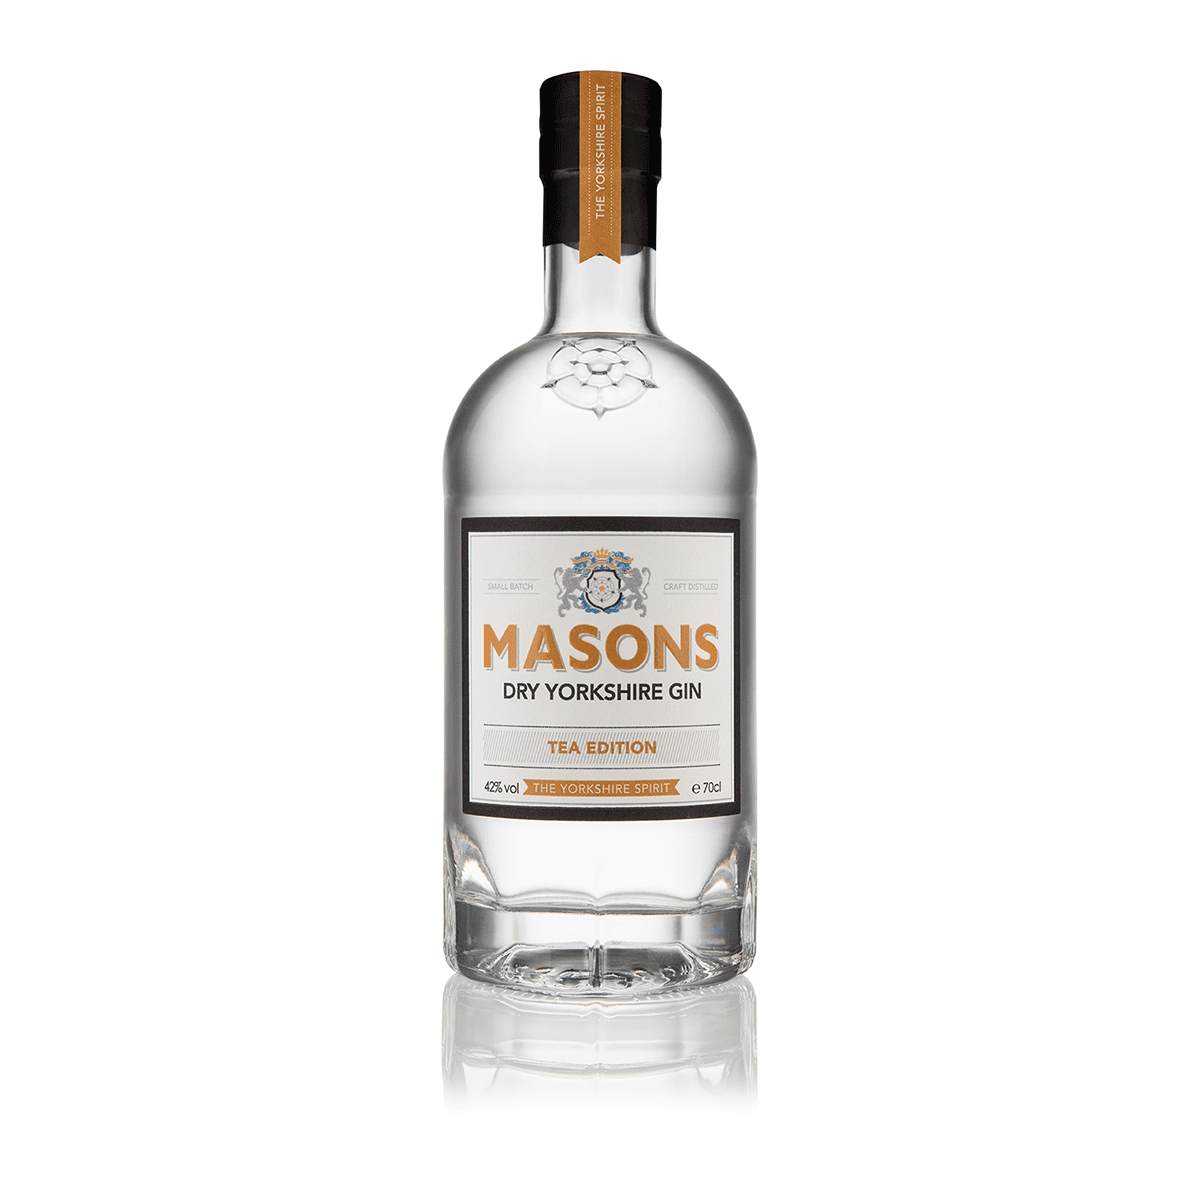 Masons Dry Yorkshire Gin – Tea Edition